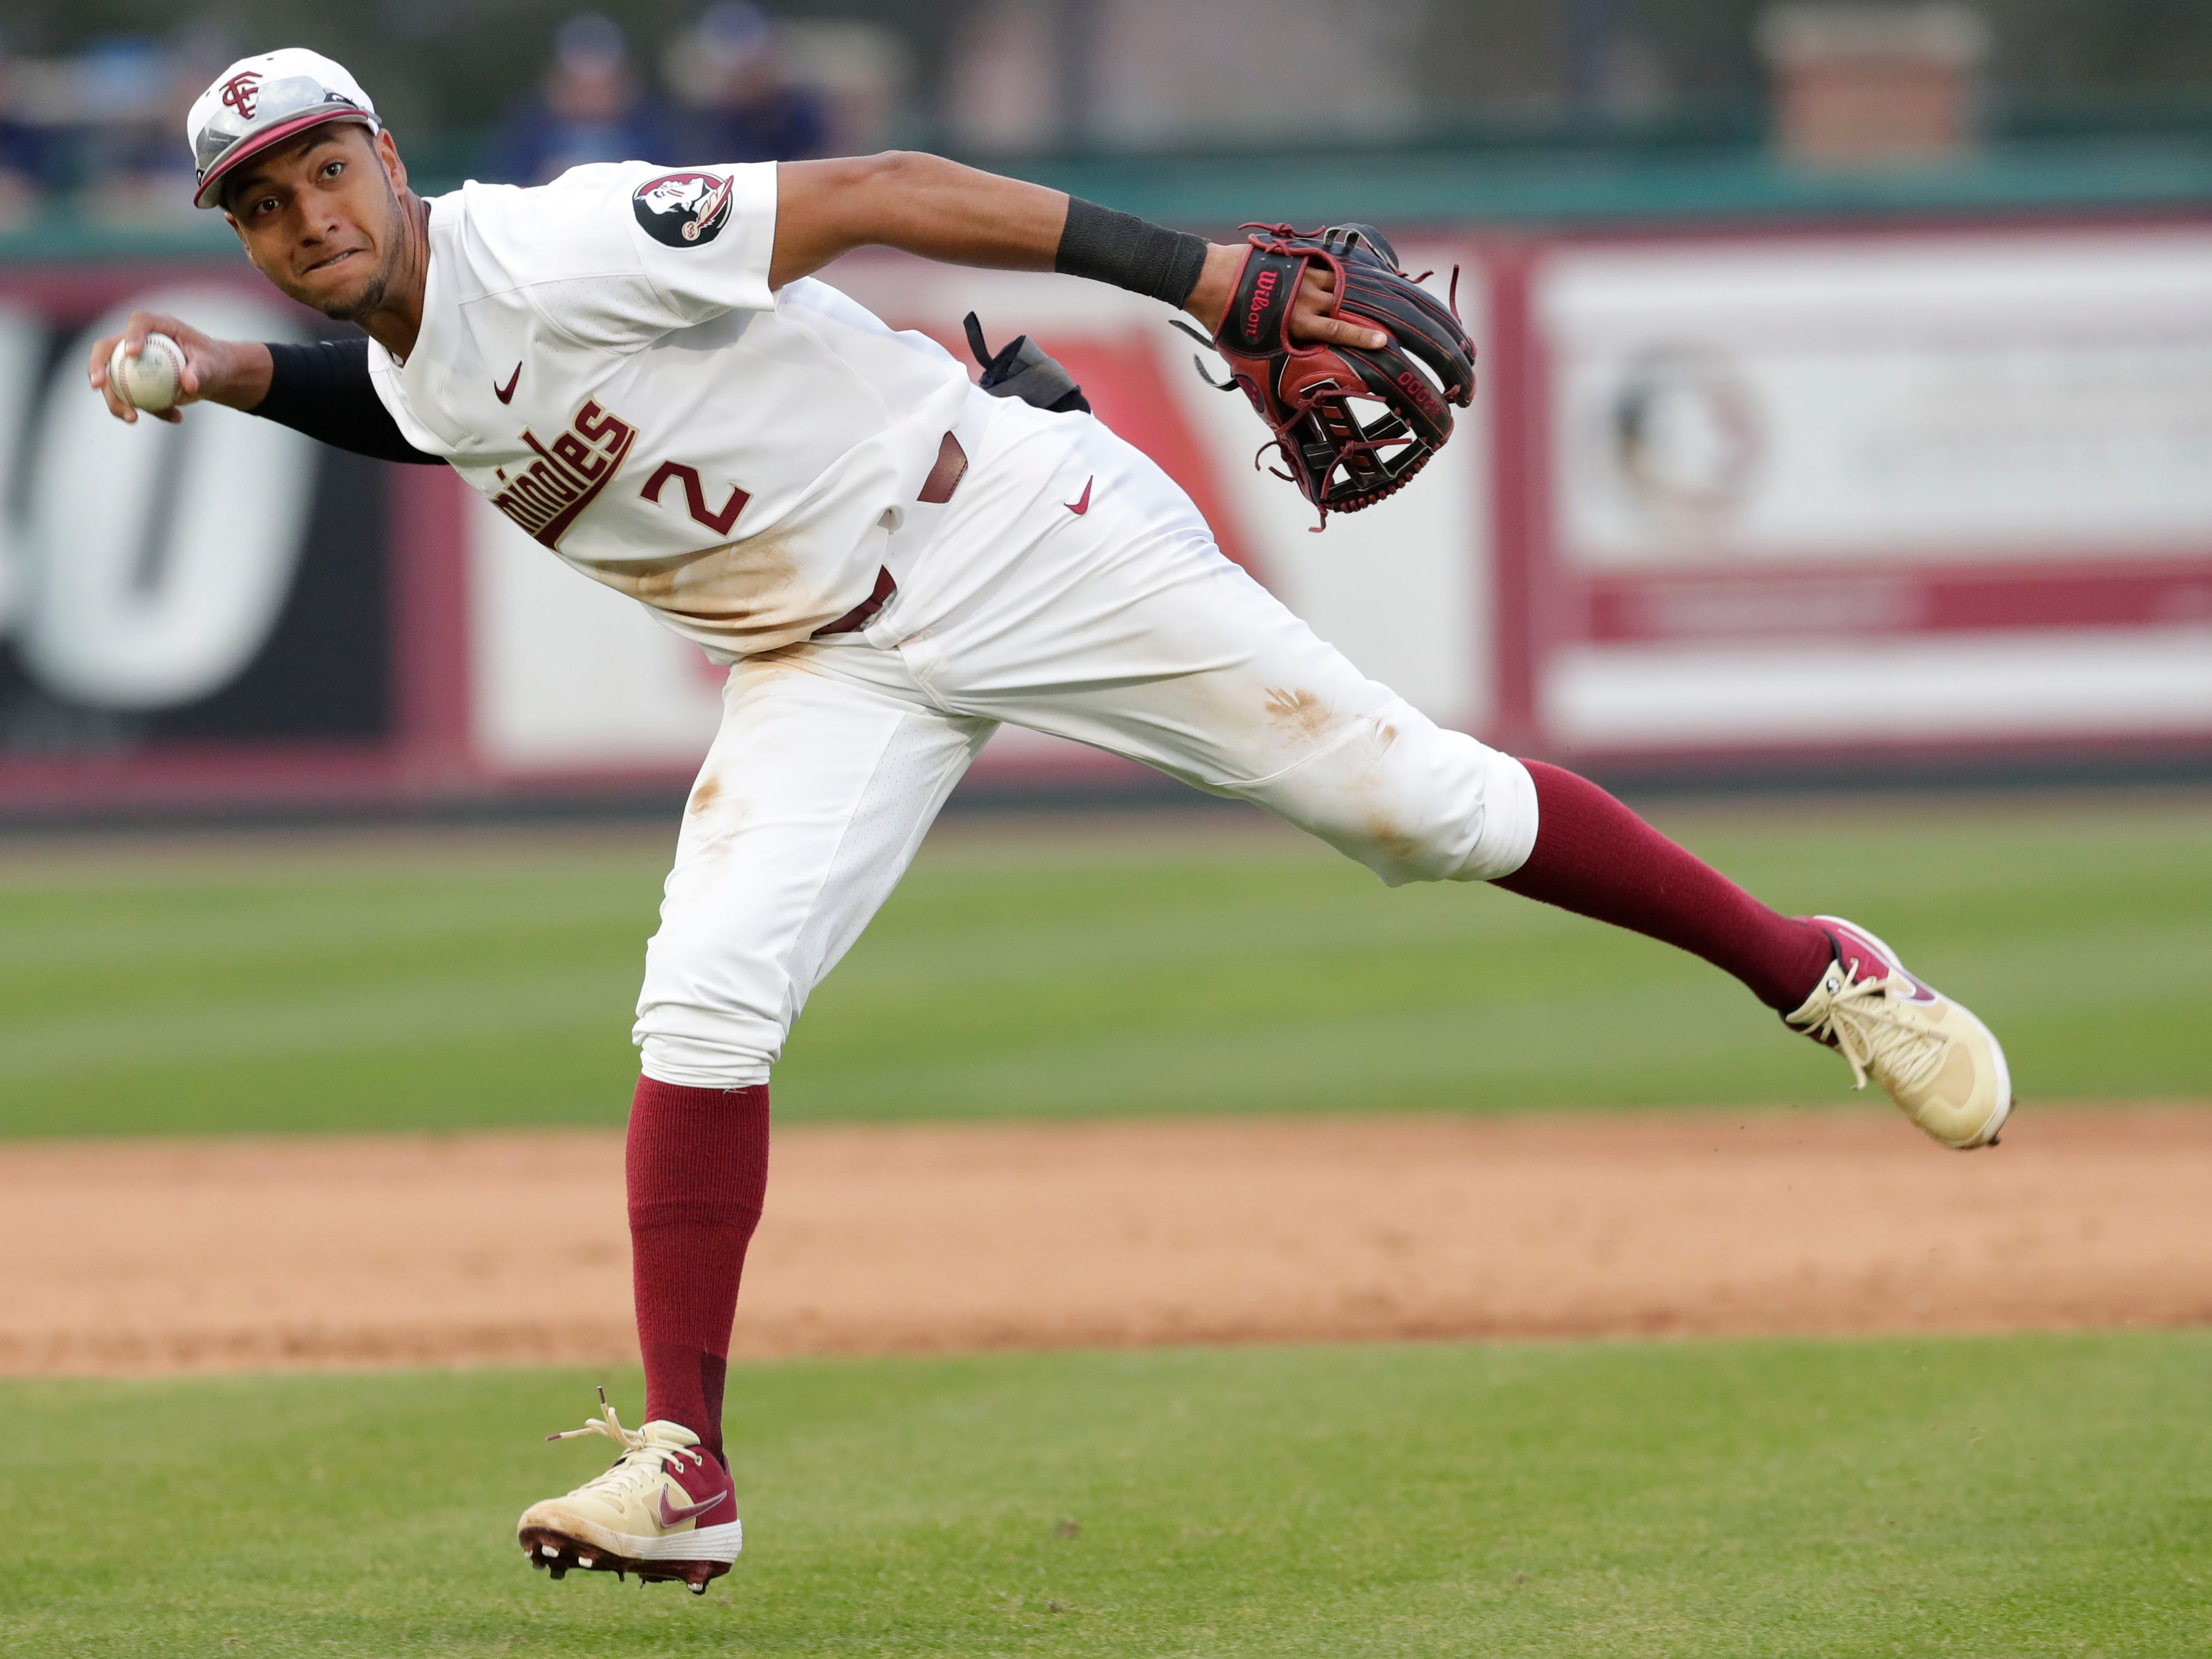 Florida State Seminoles infielder Nander De Sedas (2) throws to first to get the out as the Florida State Seminoles host the Maine Black Bears in the 2019 season opener game, Friday Feb. 15, 2019.